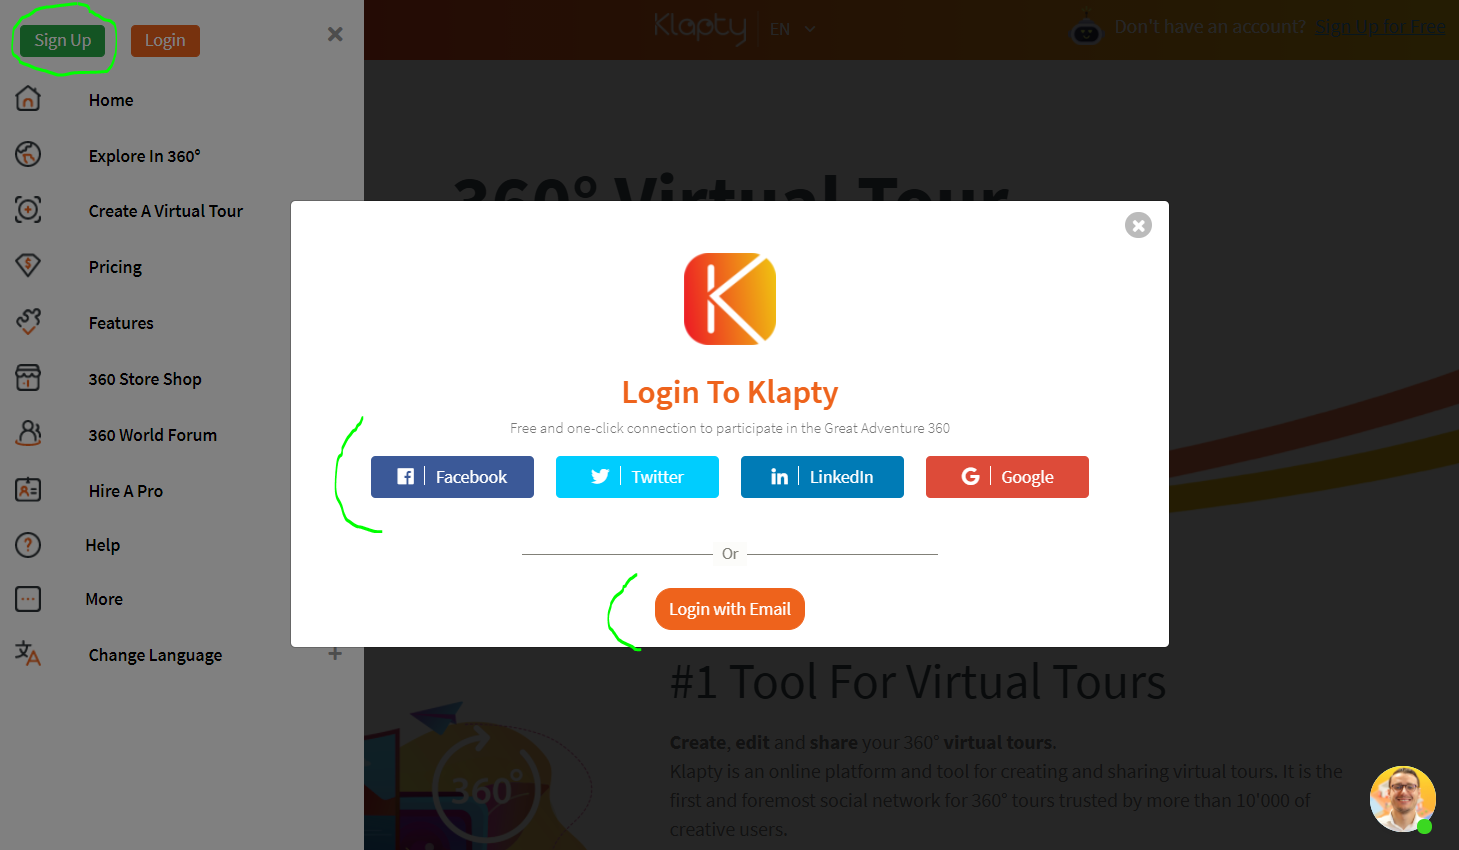 Sign up for Klapty with email or social media login